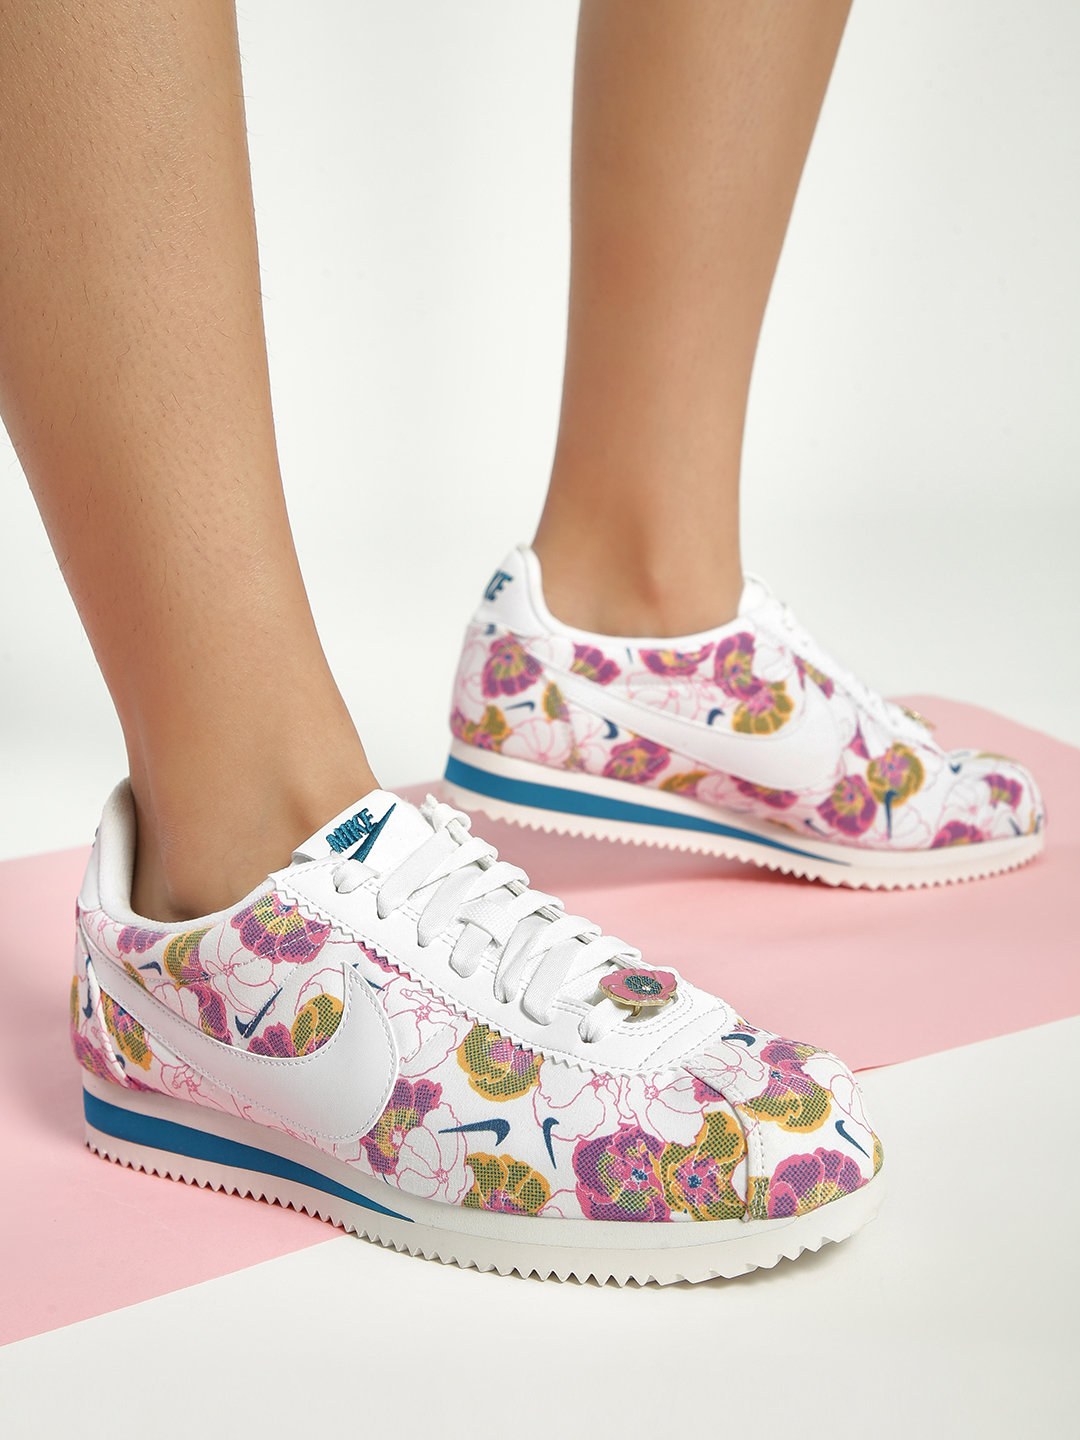 Nike Multi Classic Cortez LX Floral Sneakers 1